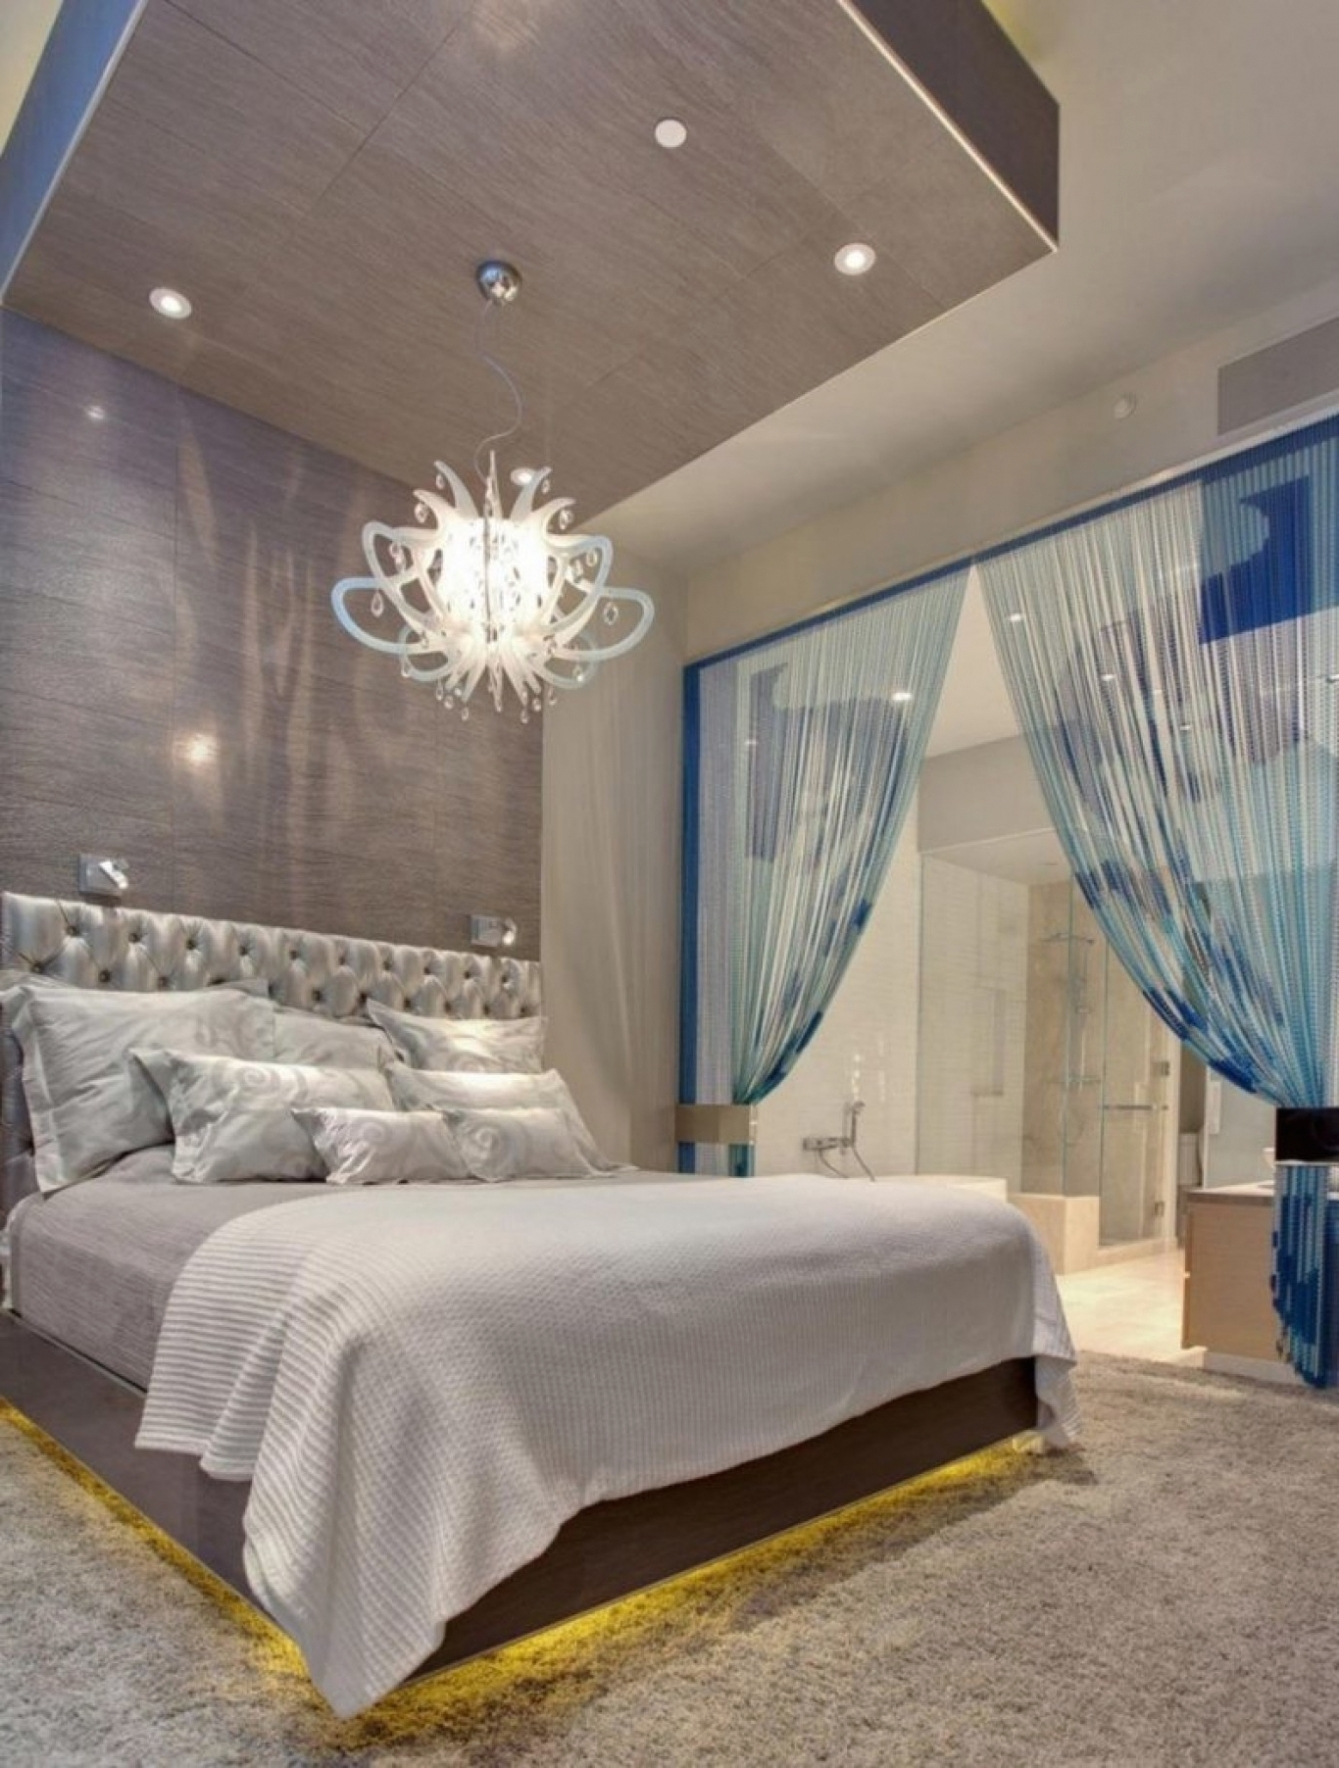 Bedroom Chandeliers With Most Up To Date Home Decor: Photos Of Chandeliers In Bedrooms Chandelier Size For (View 9 of 20)